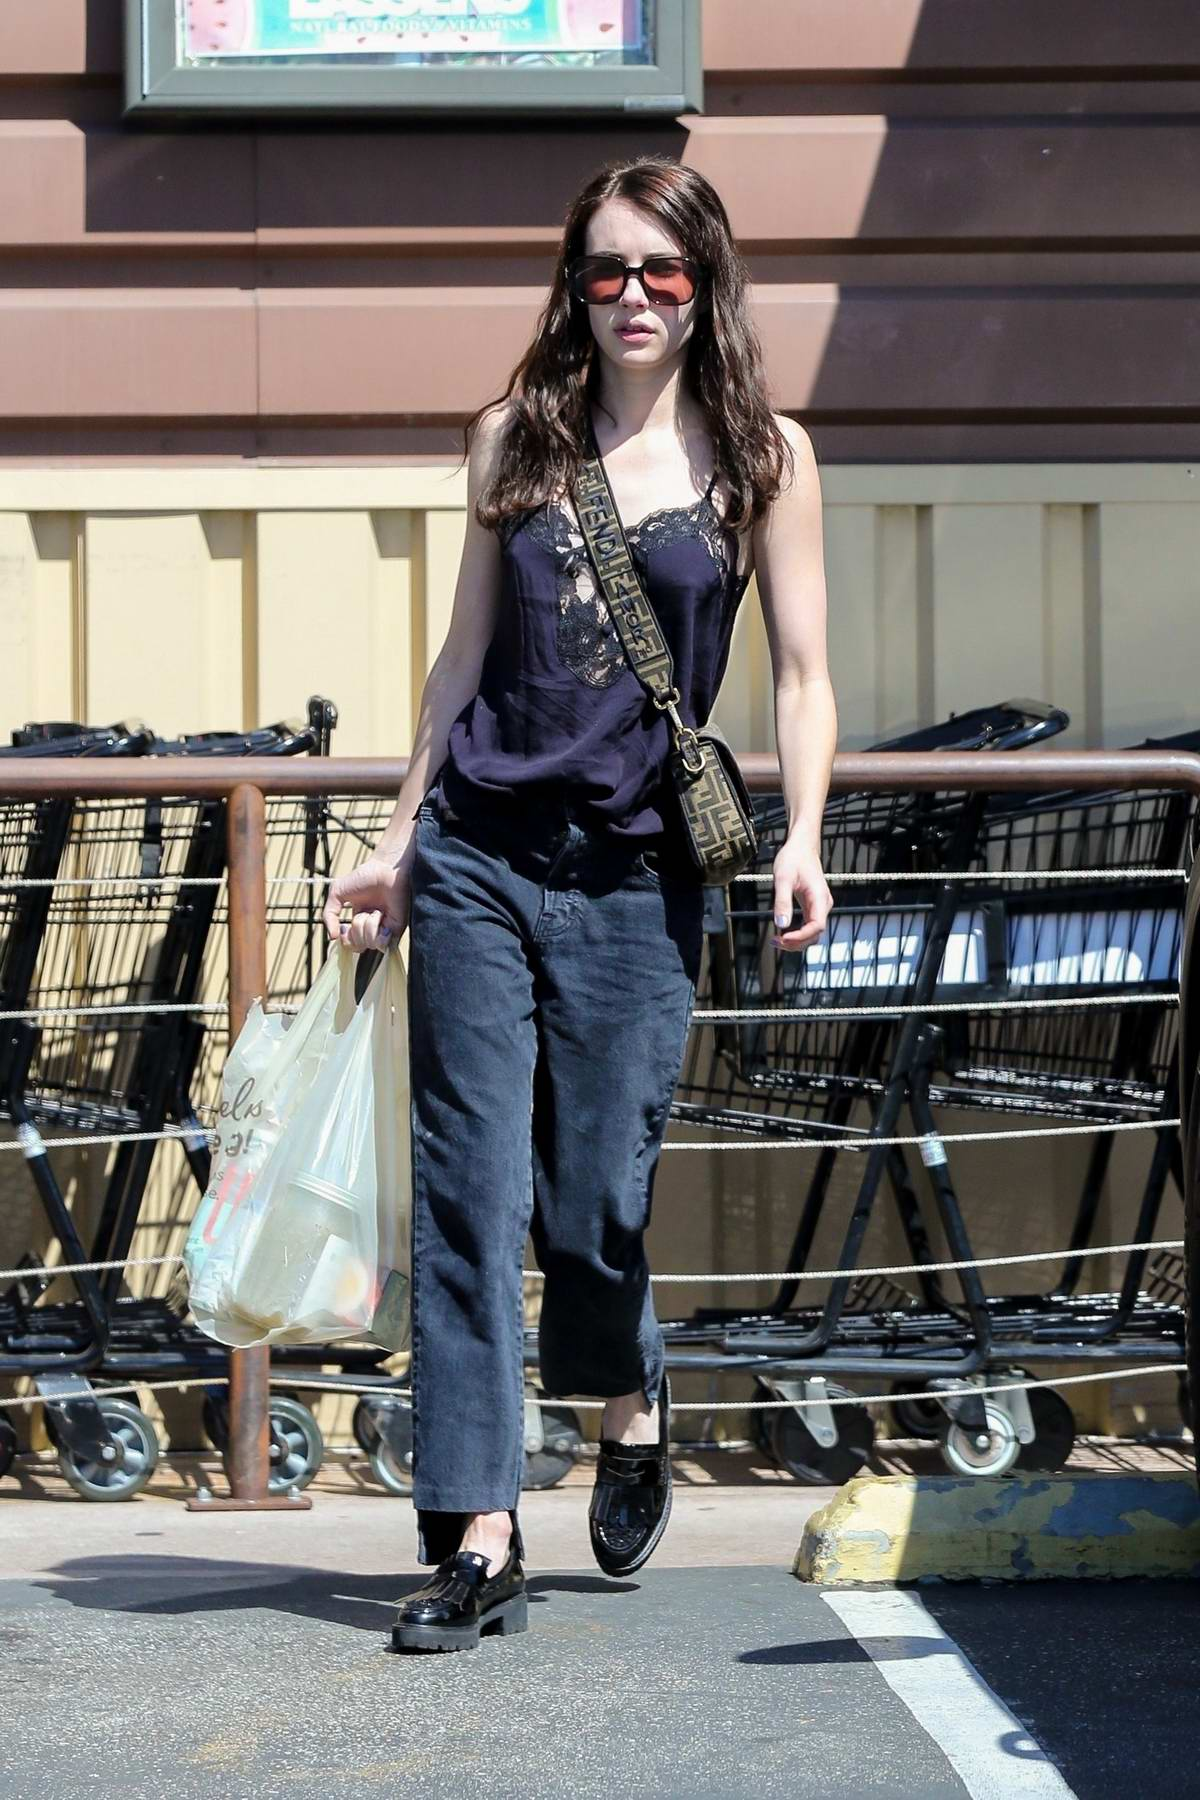 Emma Roberts wears a dark lace top and jeans as she stops by The Oaks Gourmet Market in Los Feliz, California